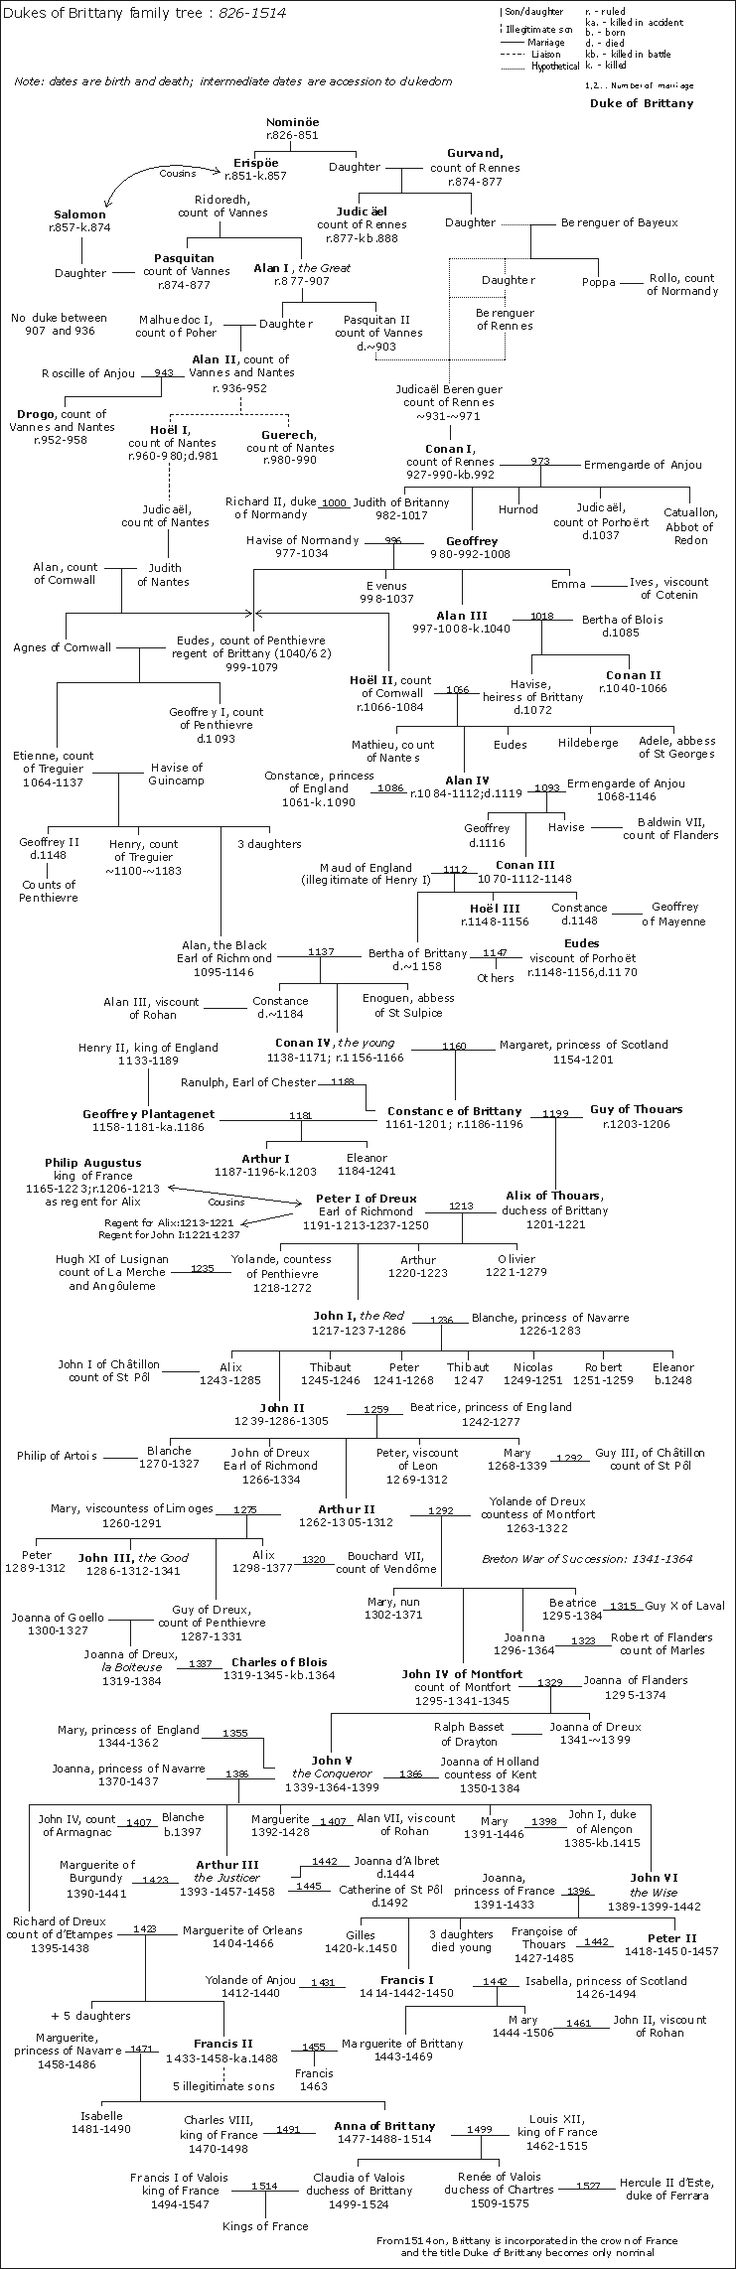 family tree for Brittany Dukes (ruled by Vikings 907-936)